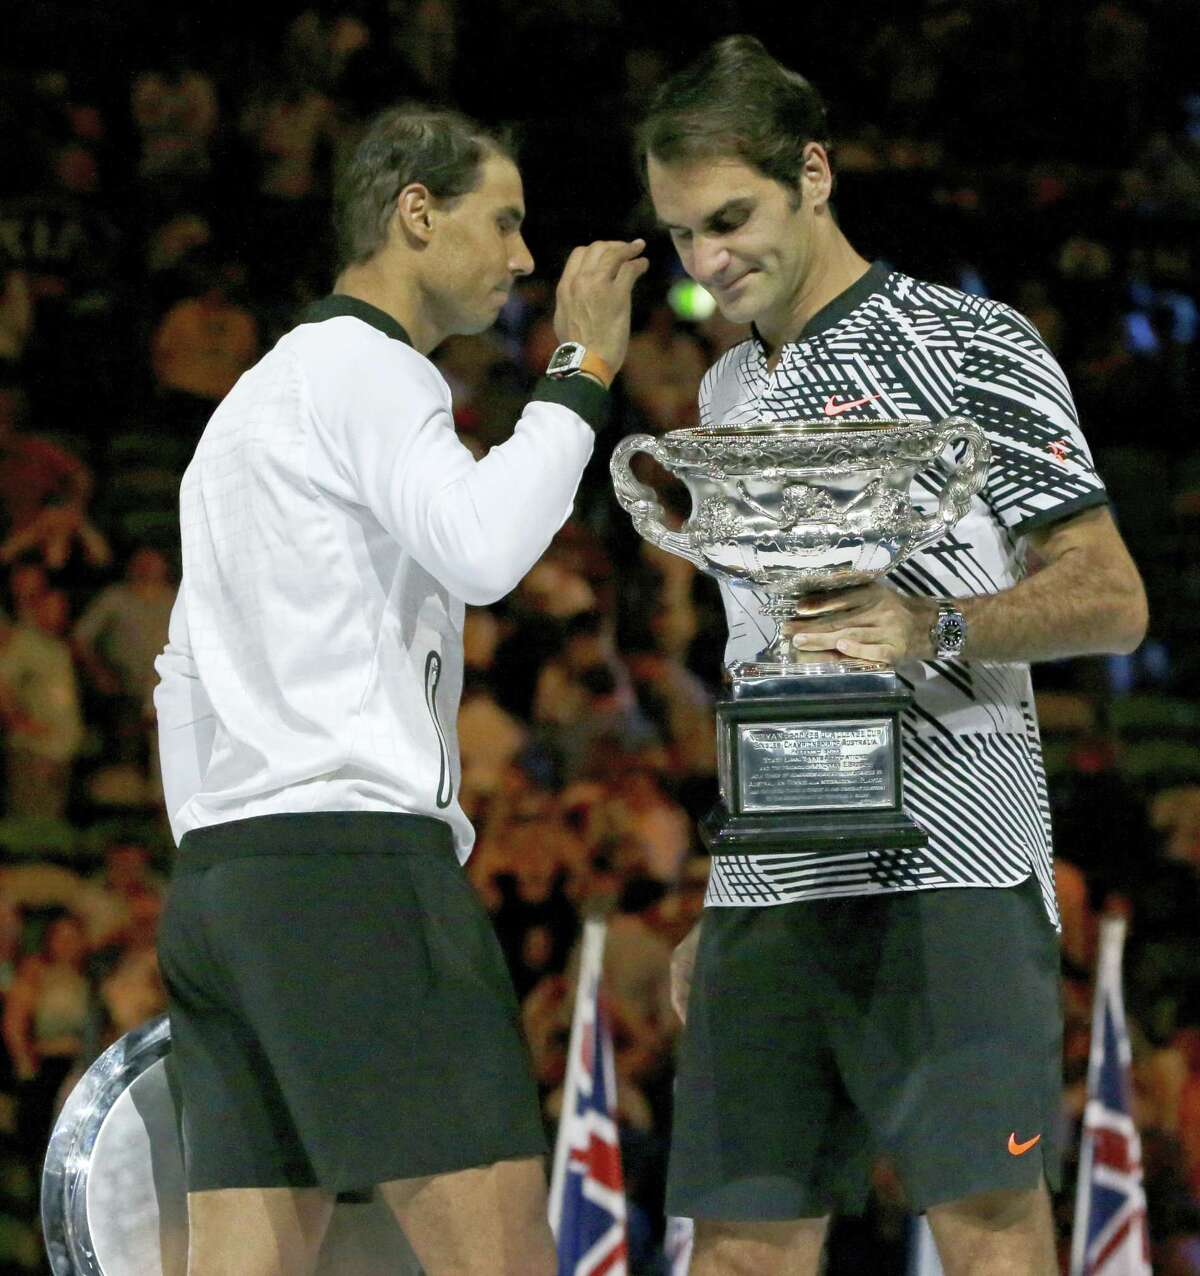 Switzerland's Roger Federer, right, holds his trophy after defeating Spain's Rafael Nadal, left, during their men's singles final at the Australian Open tennis championships in Melbourne, Australia, Sunday.